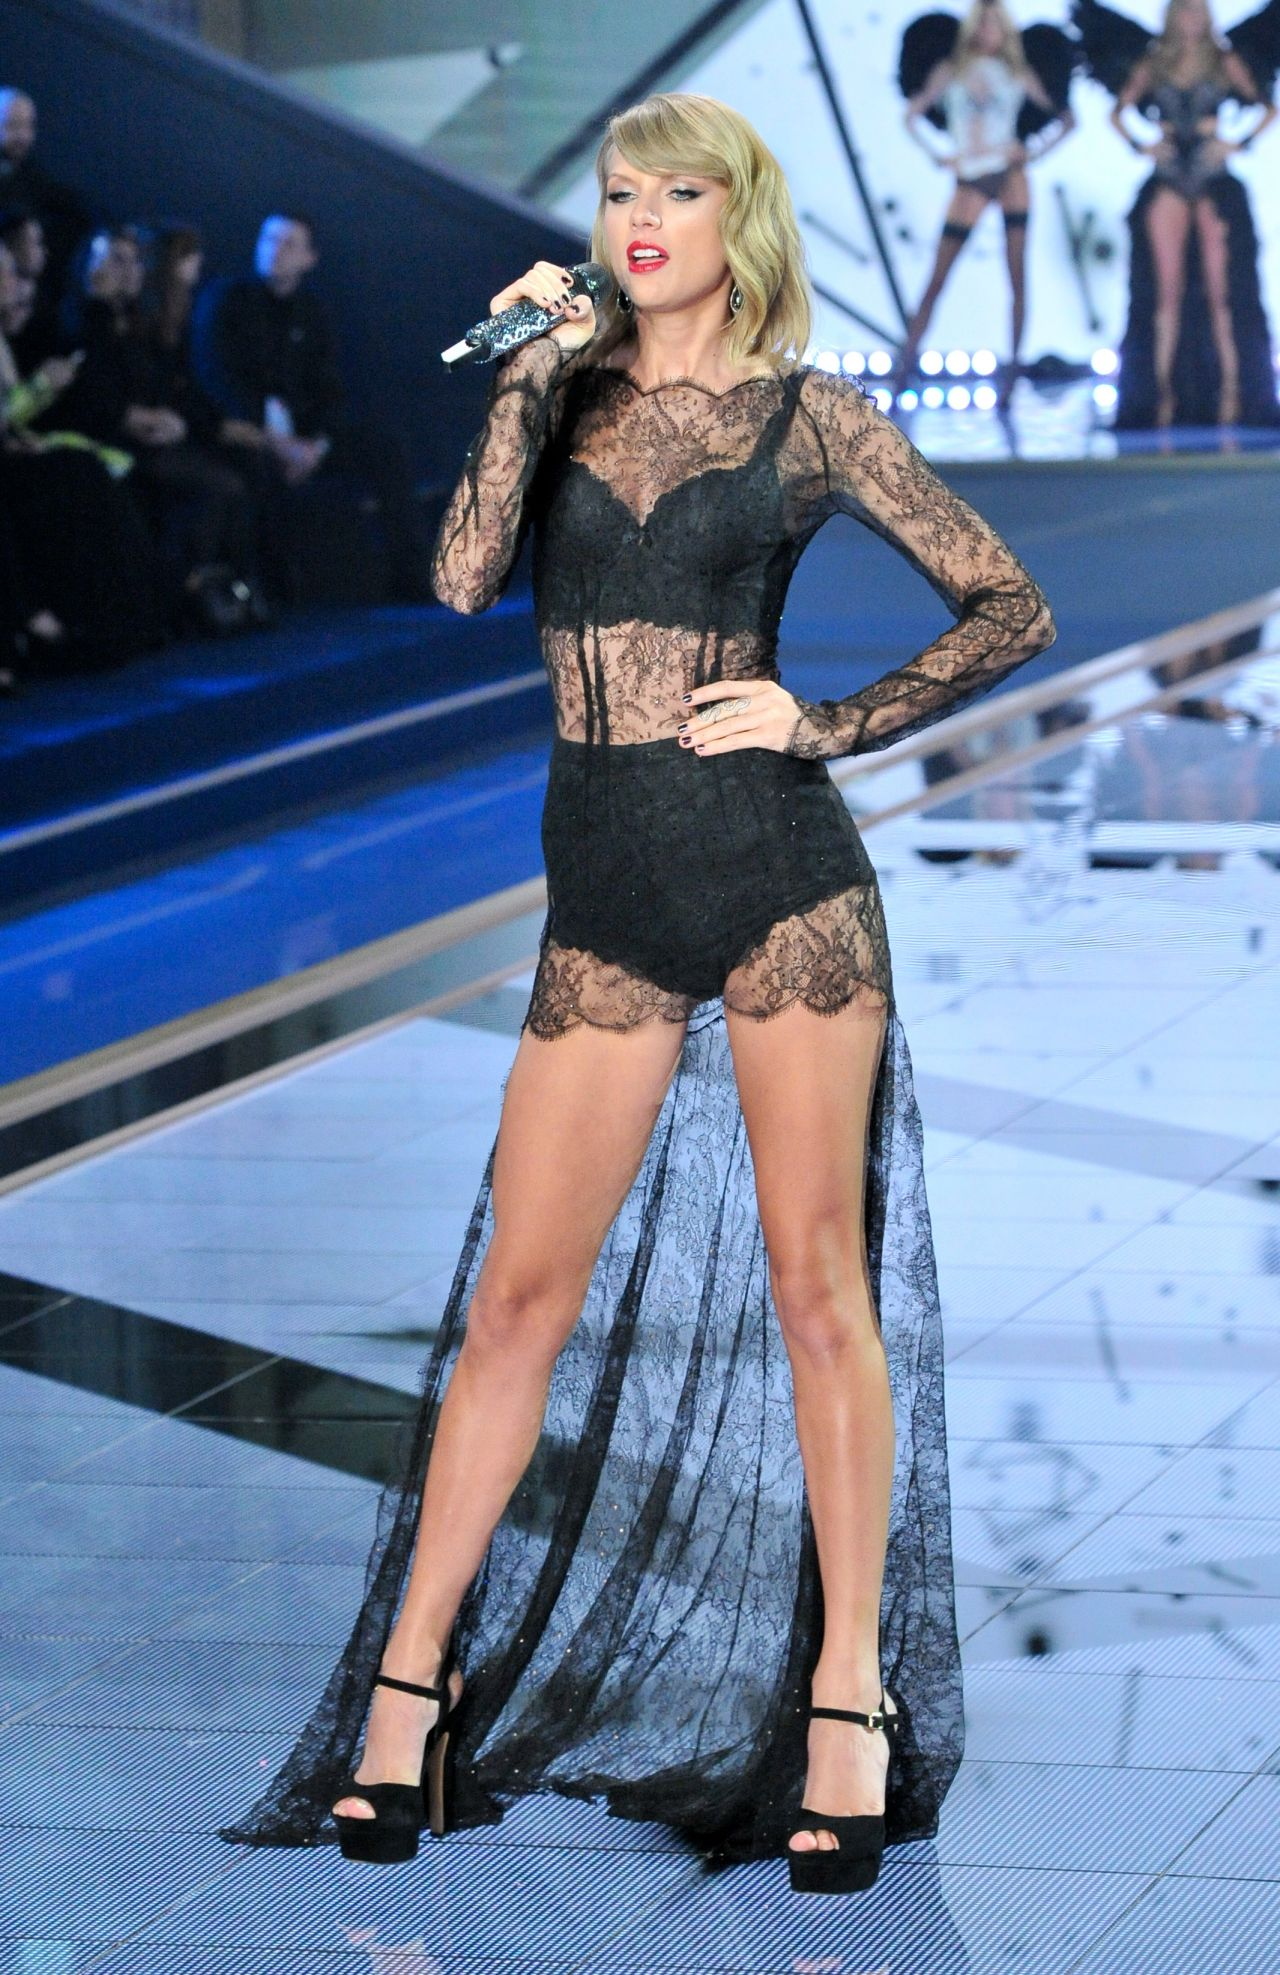 Victoria Fashion Show Taylor Swift Taylor Swift Performs at